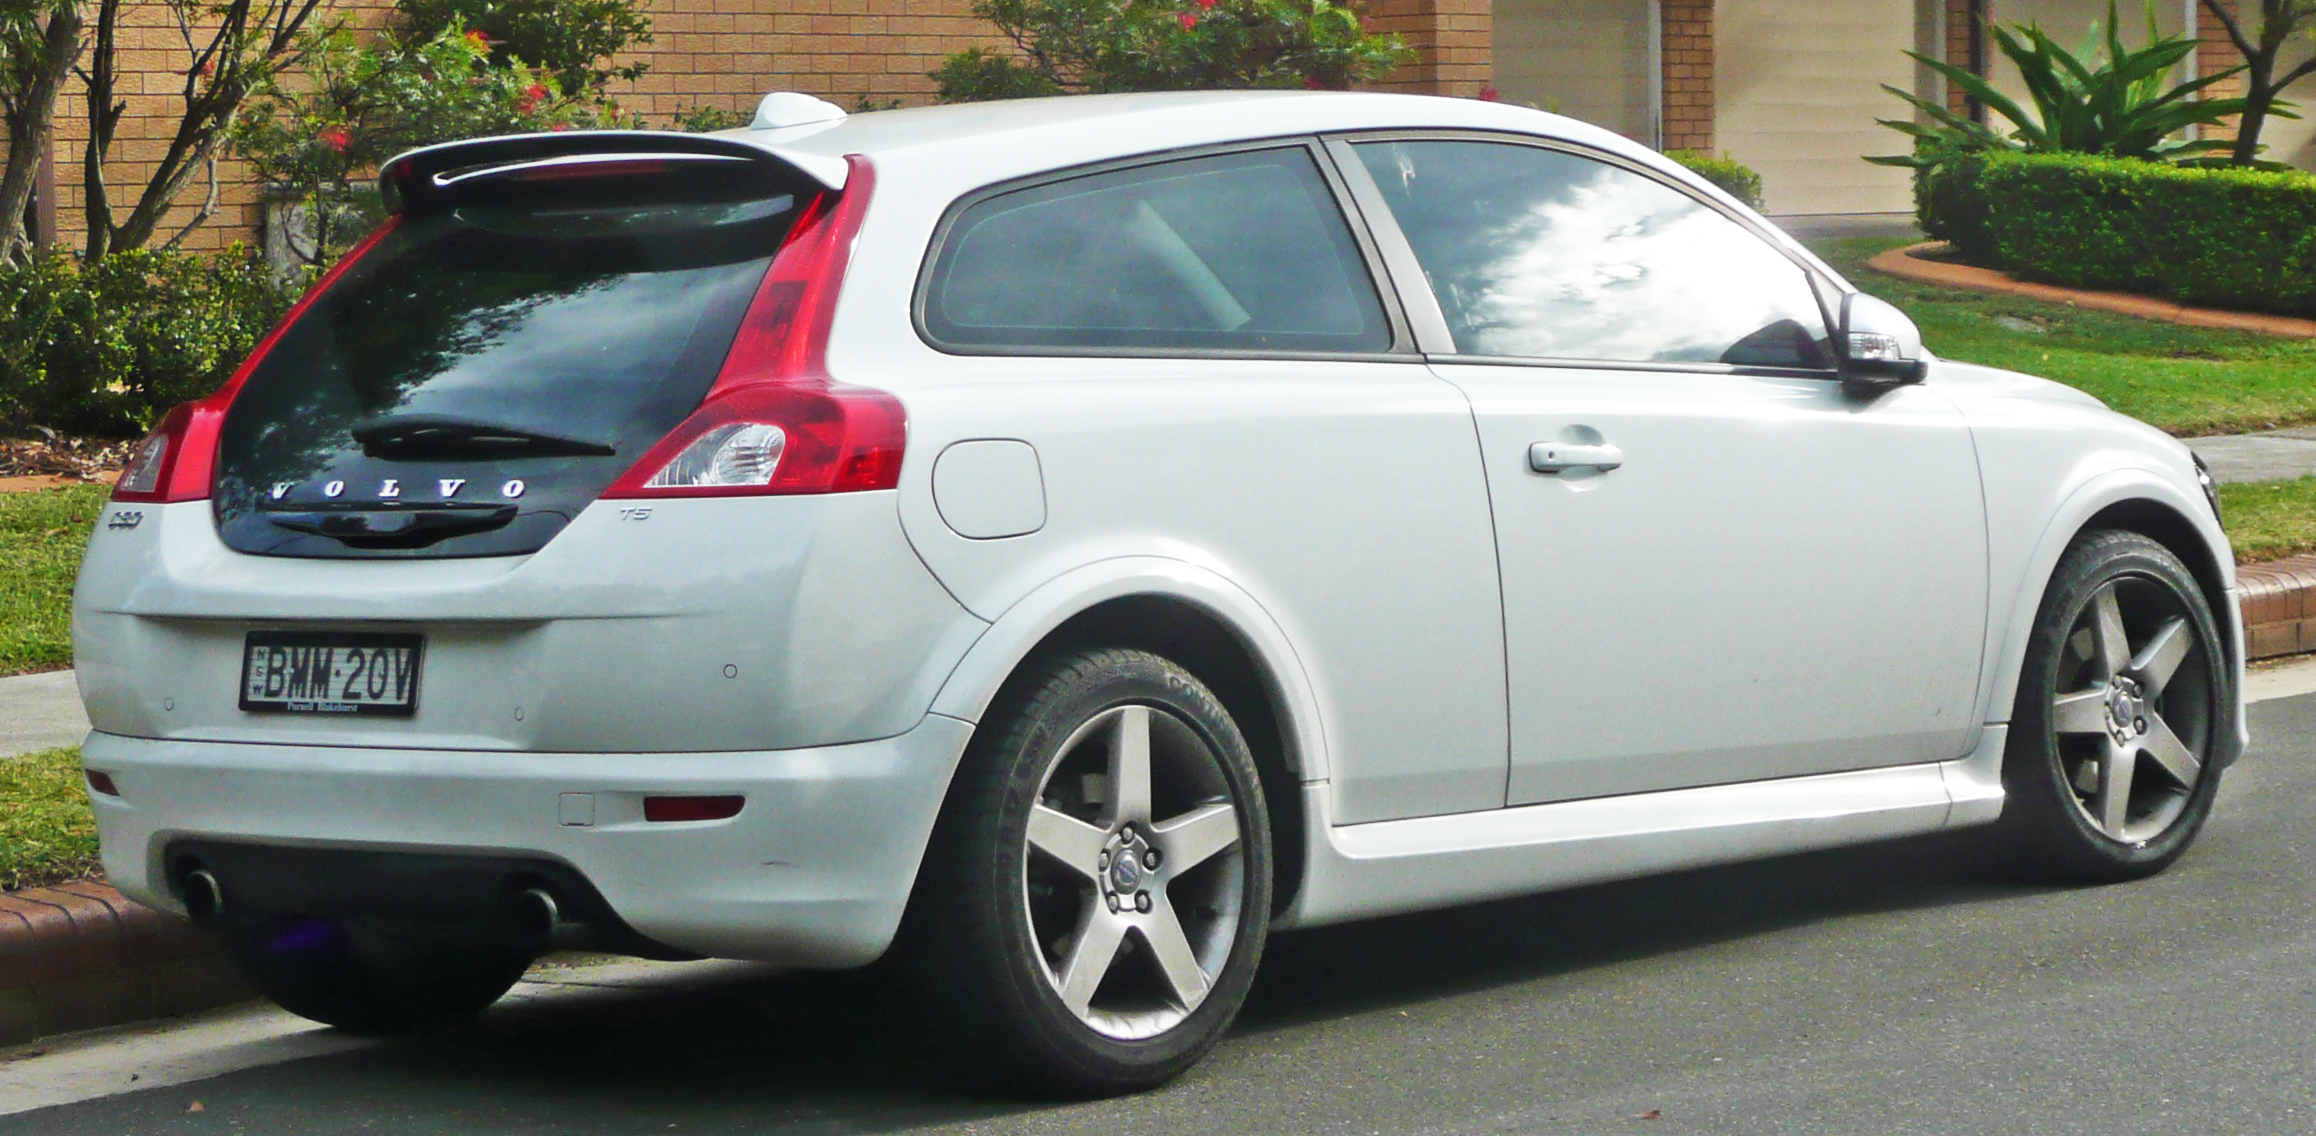 volvo c30 wikipedia autos post. Black Bedroom Furniture Sets. Home Design Ideas